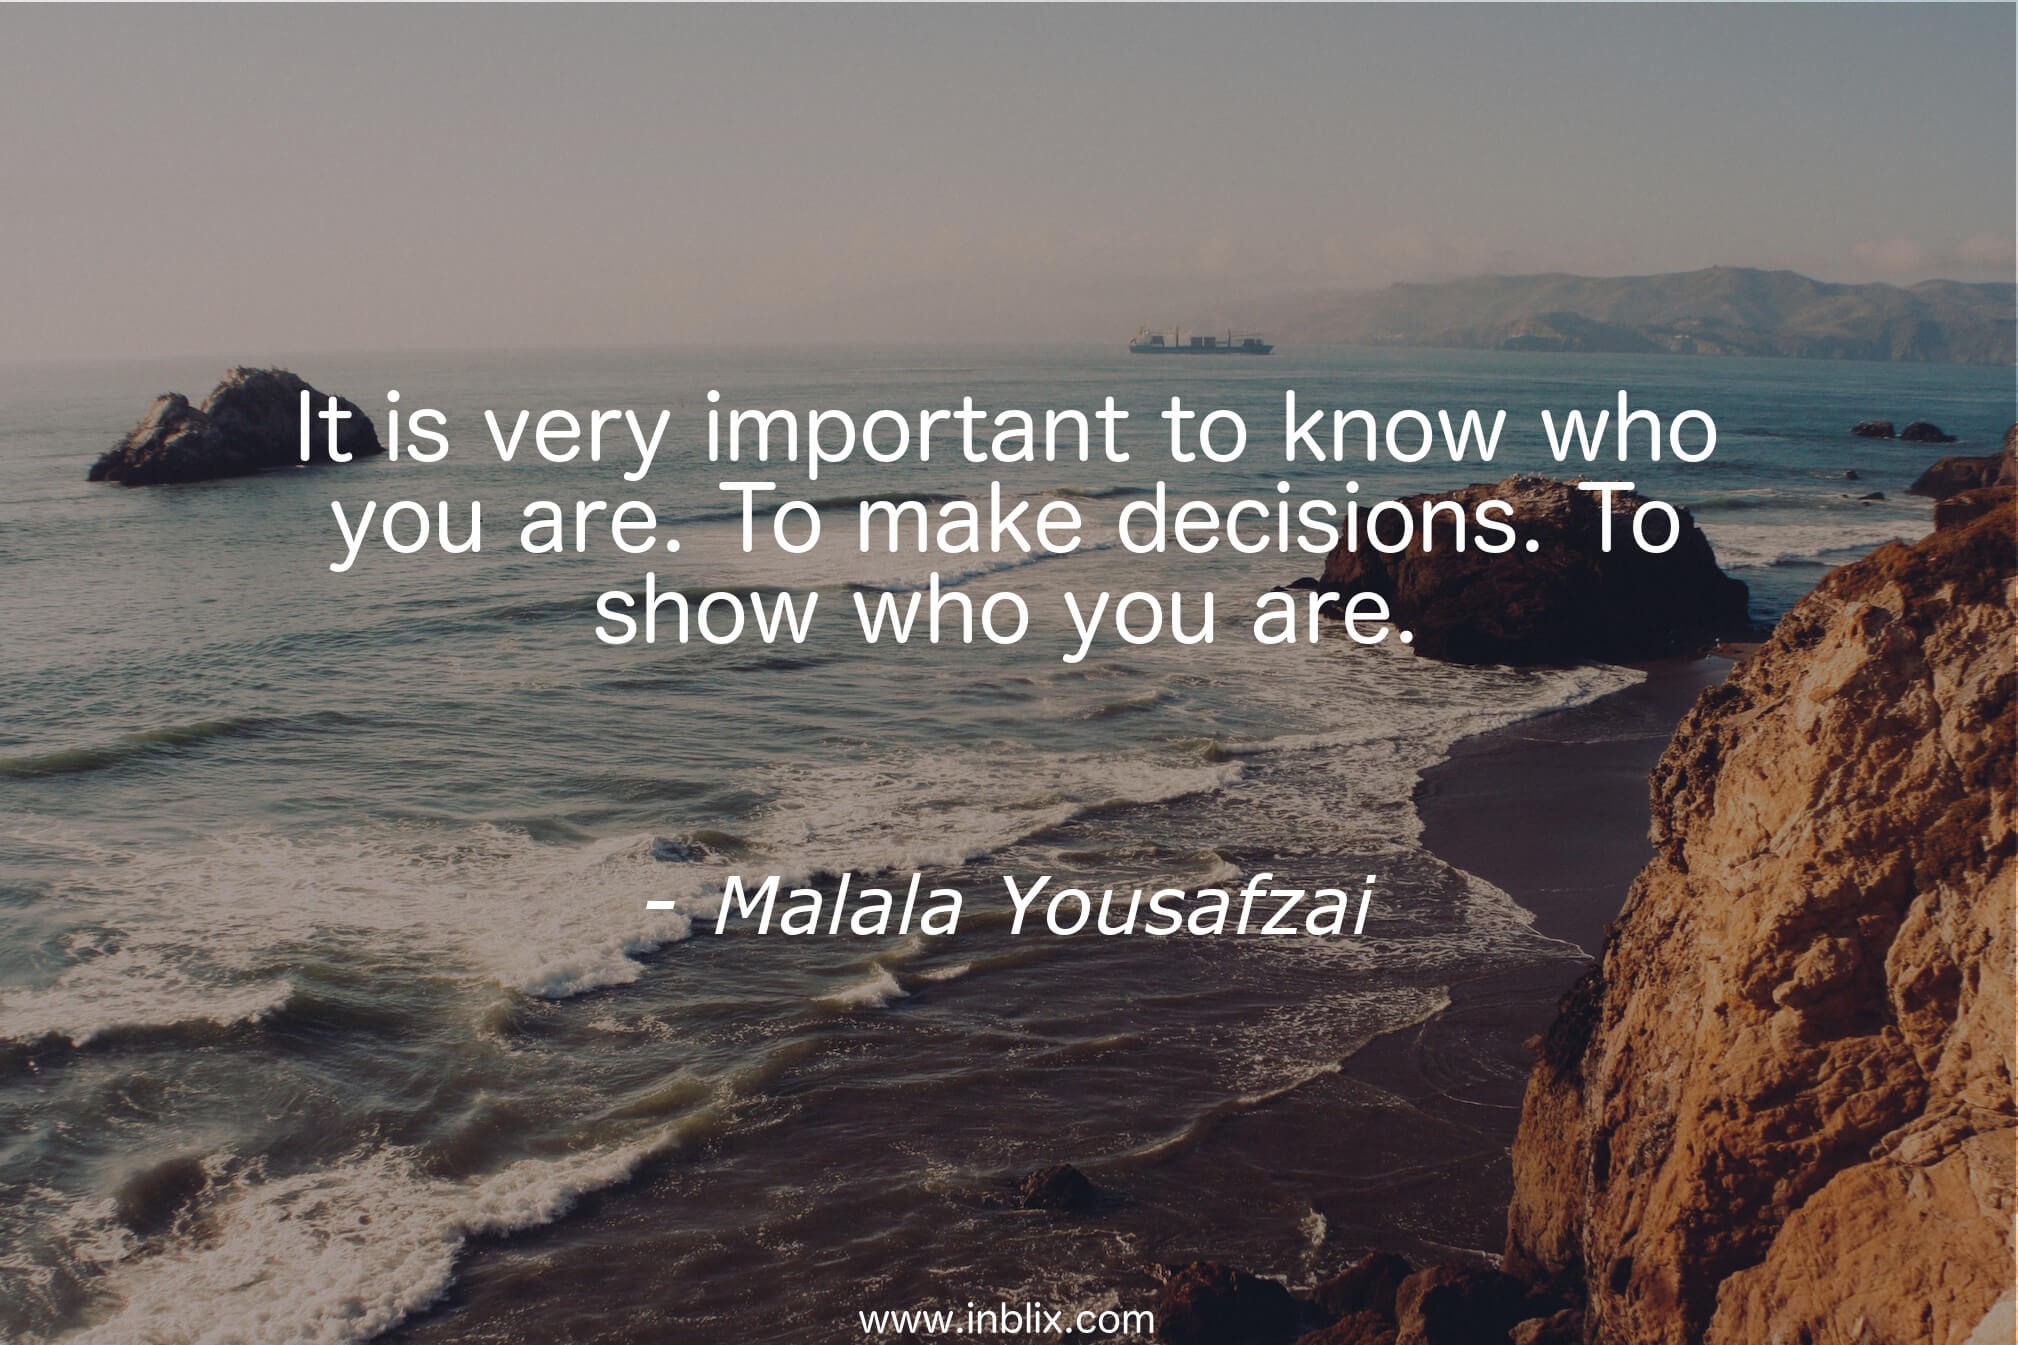 It is very important to know who you are. To make decisions. To show who you are.